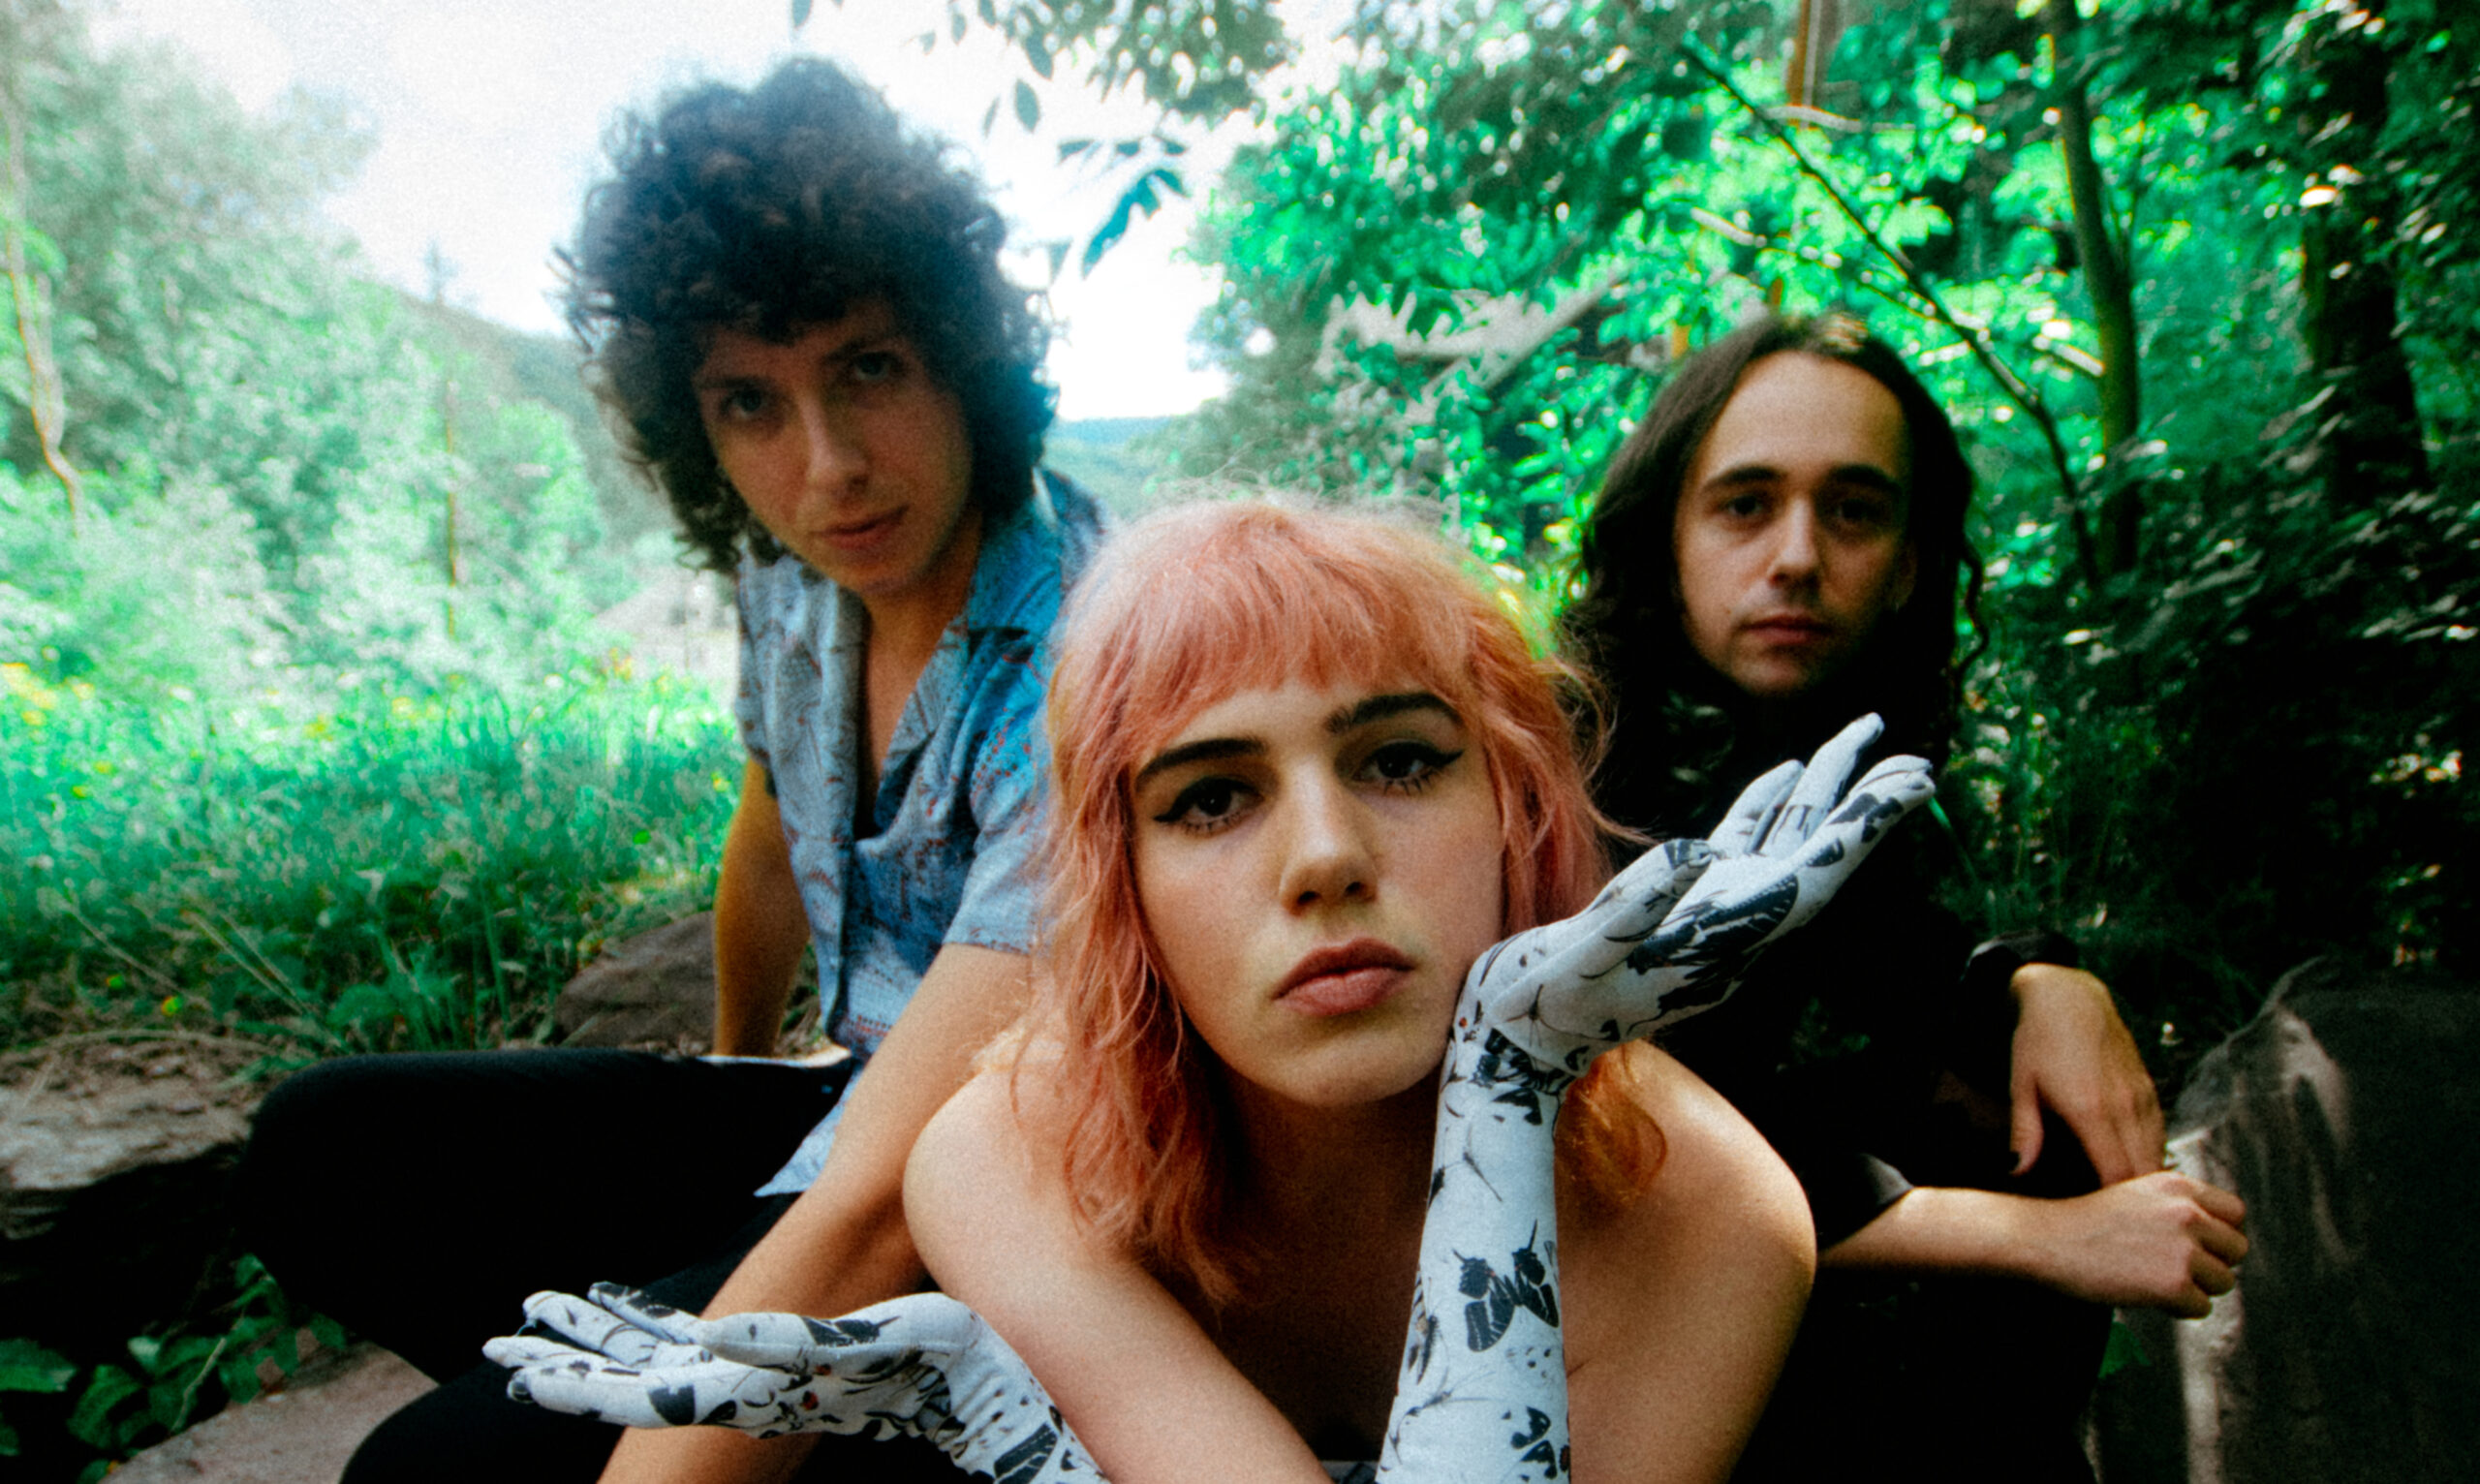 SUNFLOWER BEAN shares 'Moment In The Sun' their first new song & video of 2020